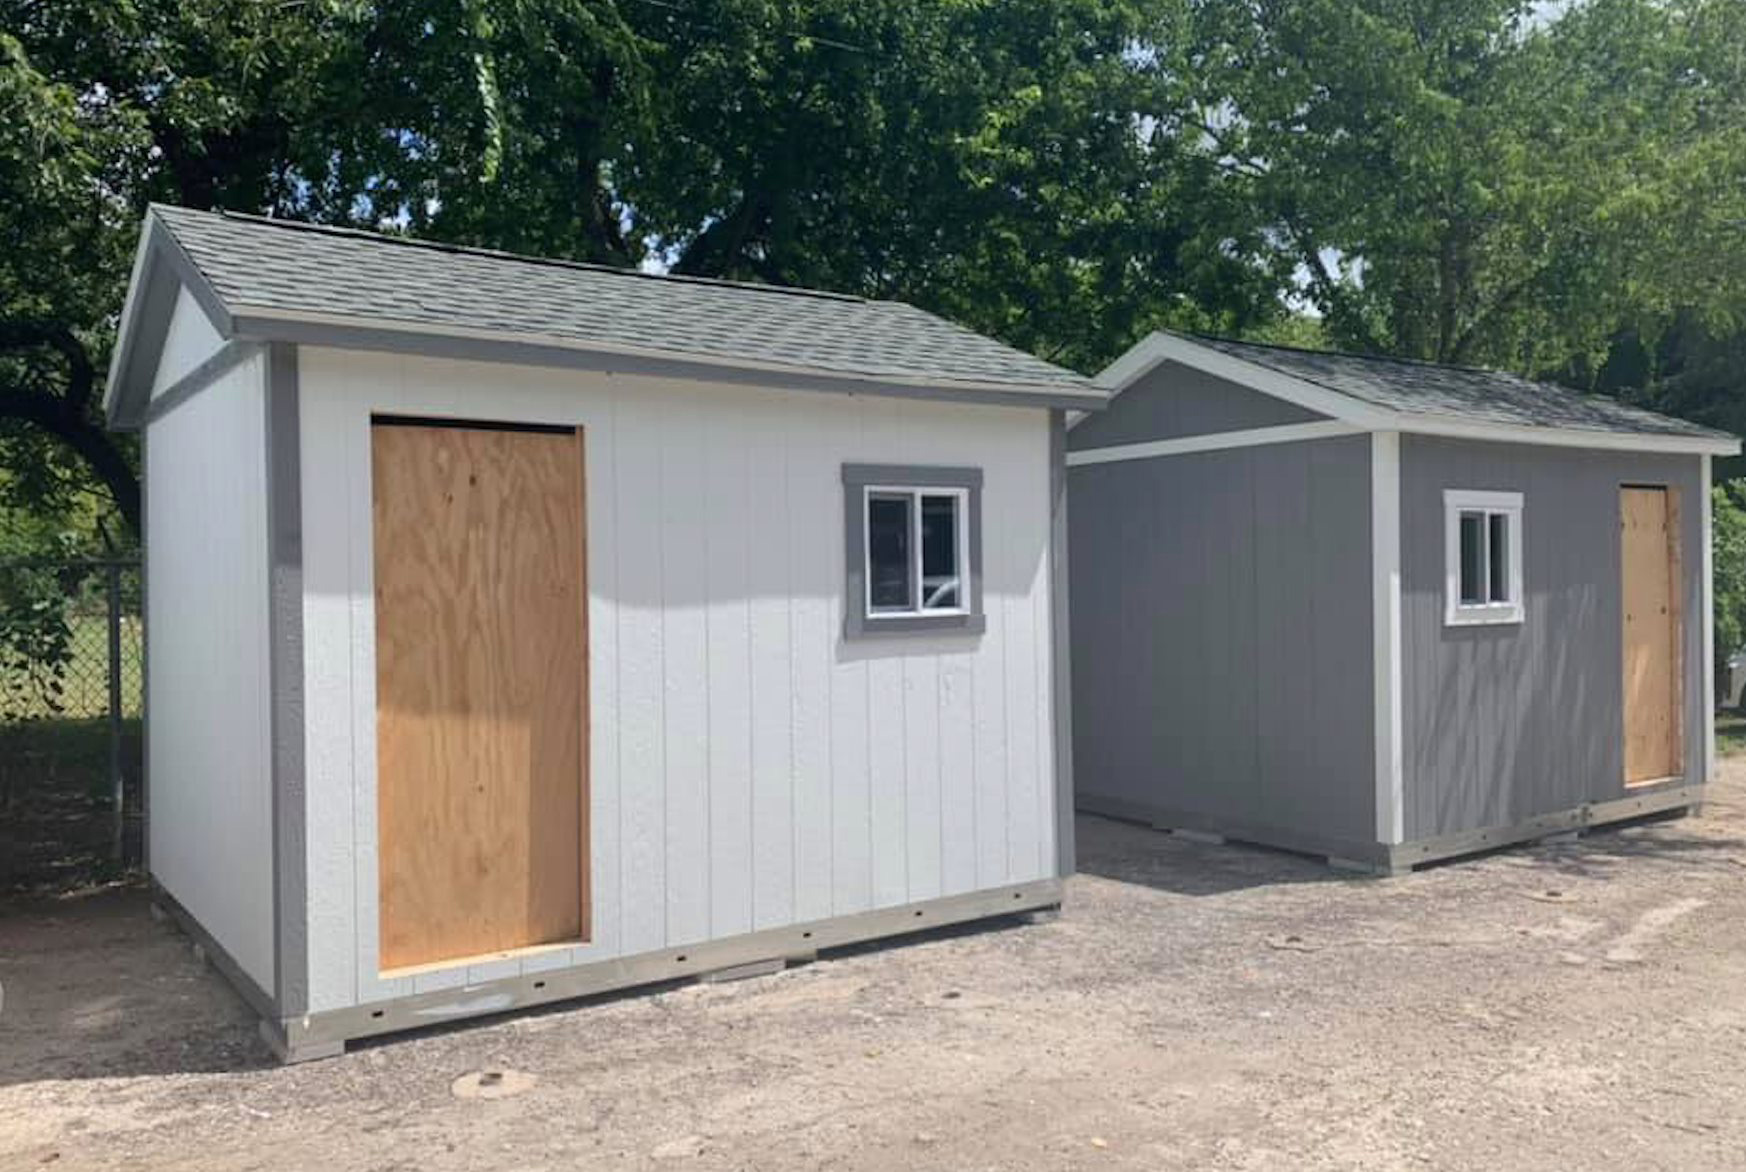 Texas animal shelter is using tiny homes instead of kennels to house dogs in need